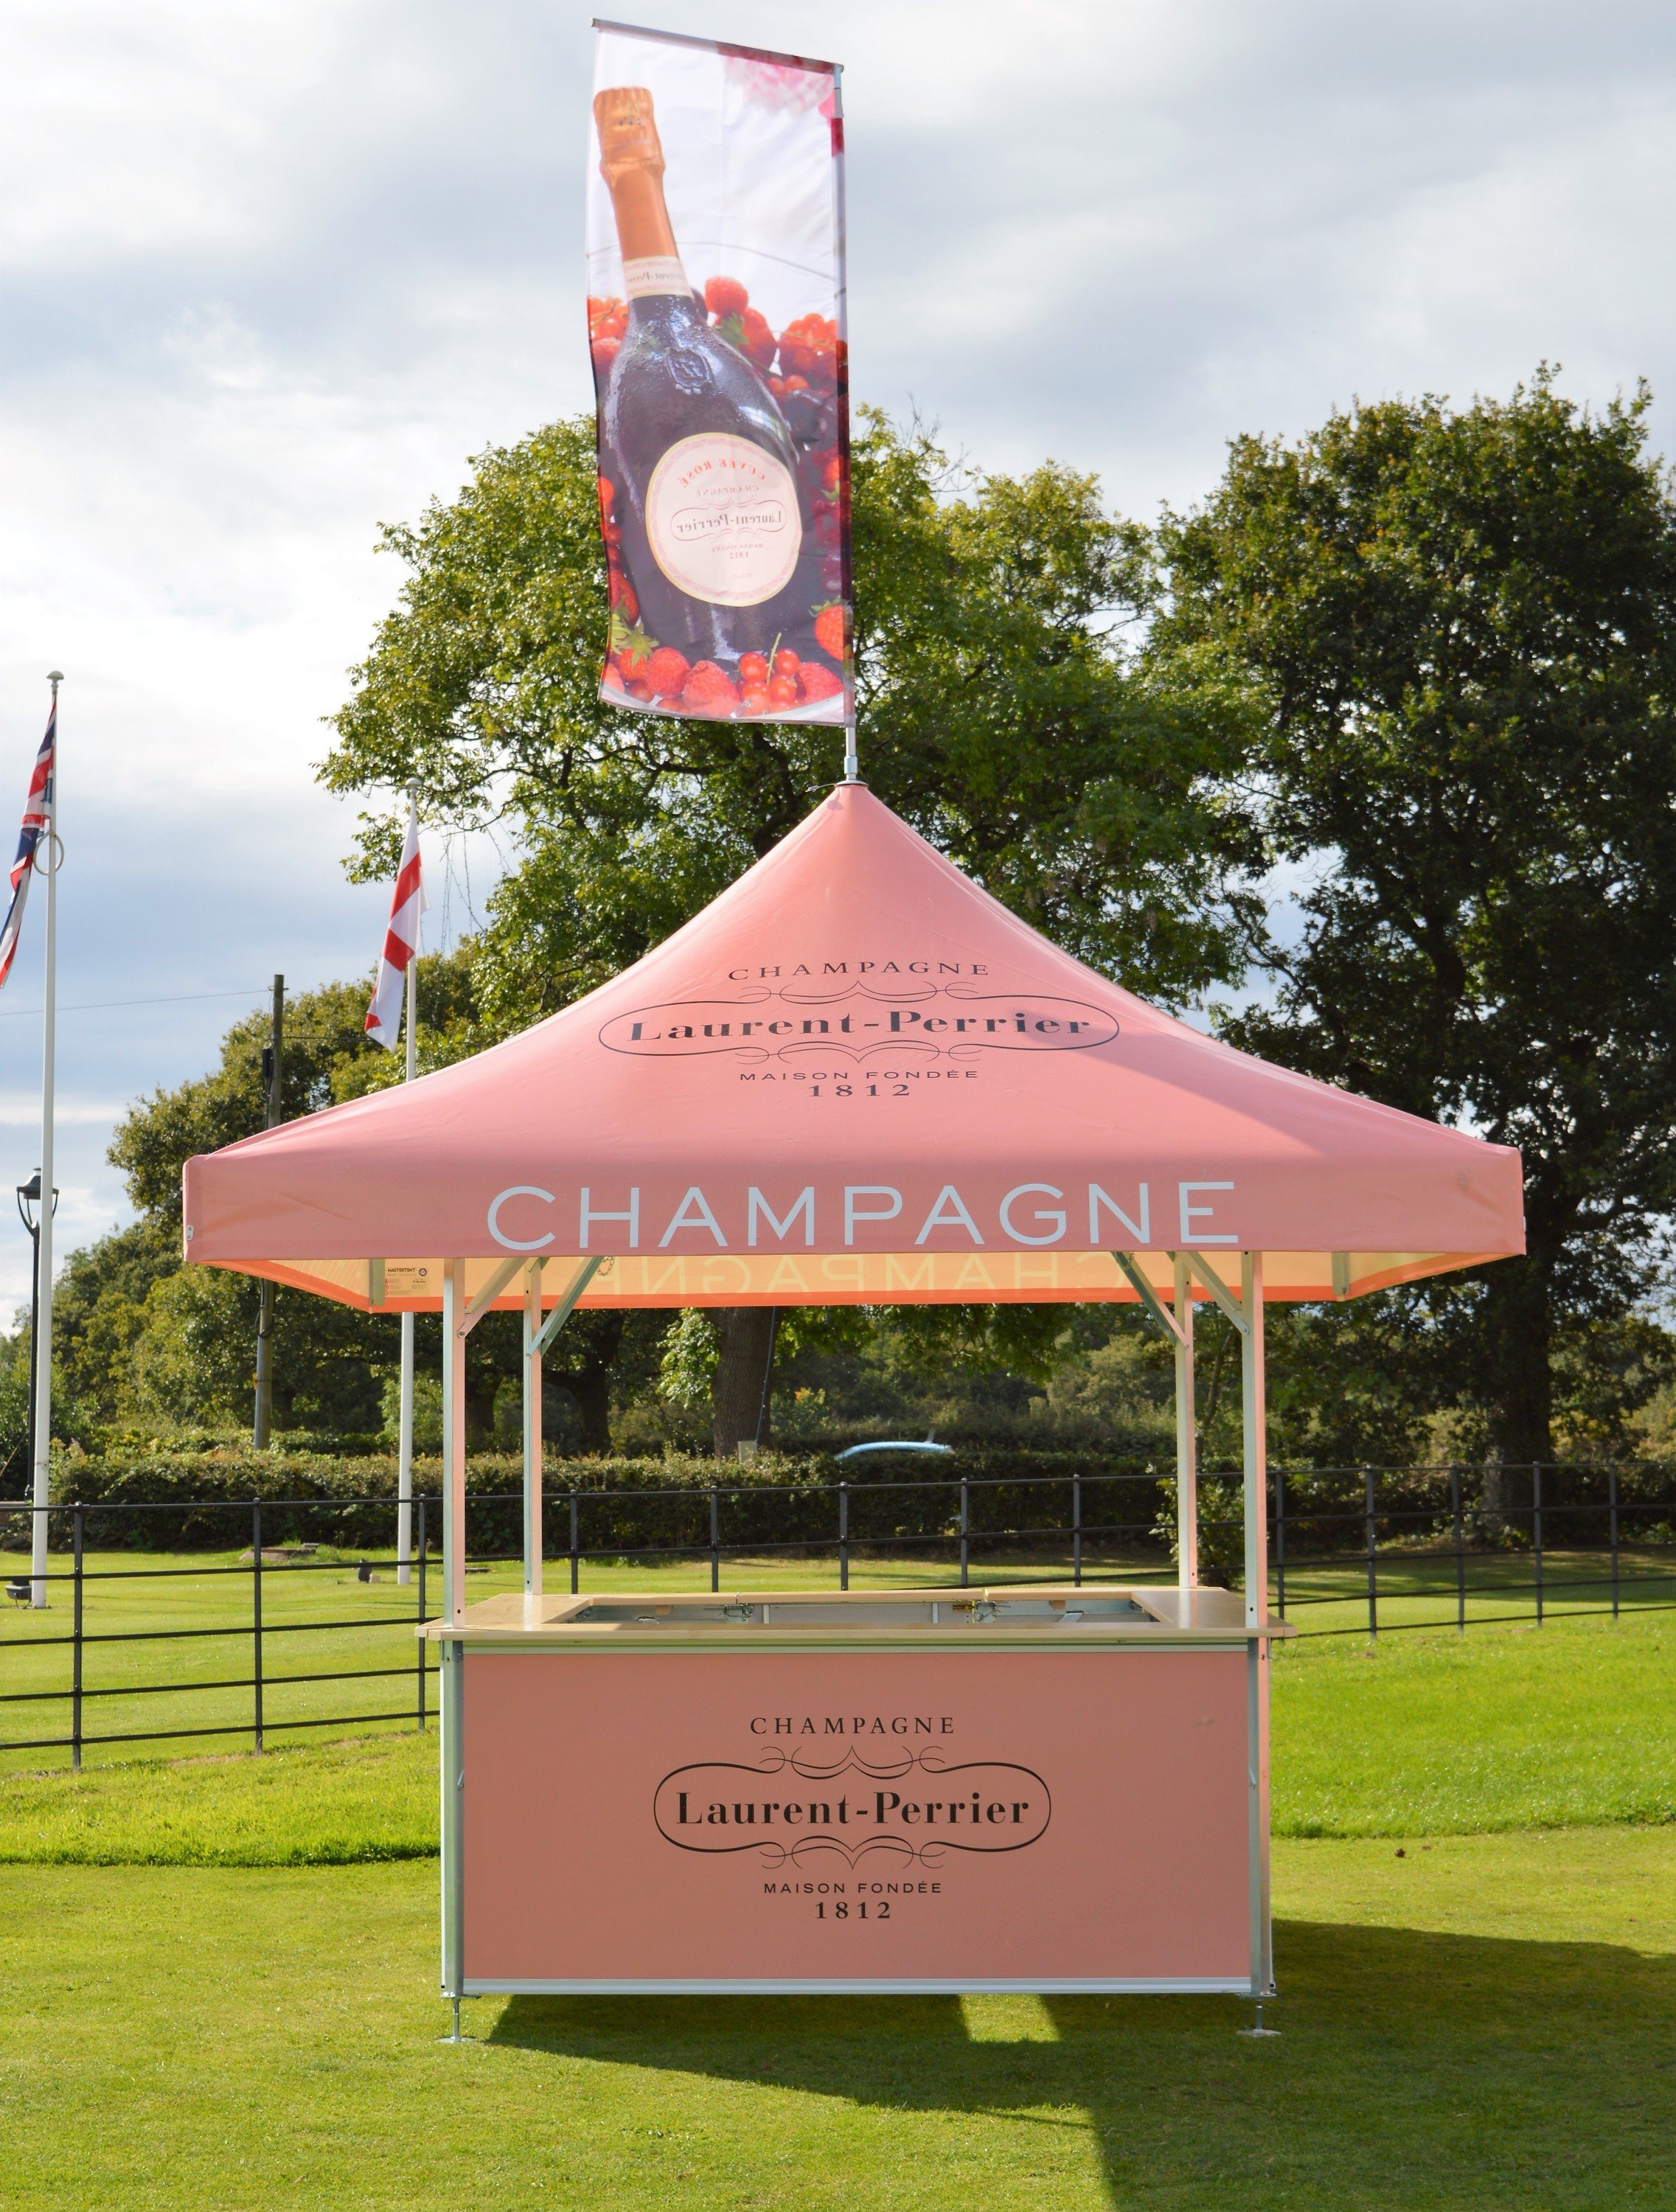 <p>Event, Mobile &amp; Stadia Bars &#8211; Tents &amp; Marquees &#8211; Square Pavilion.</p> <p>&nbsp;</p> <p>Laurent Perrier Champagne Bar with branded Roof Flag</p> <p>&nbsp;</p> <p>Square Pavilions are ideal for smaller areas when space is at a premium. Can be branded to suit customer requirements.</p> <p>&nbsp;</p> <p>Ideal for serving drinks from for example premium champagne brands, but also serve well as an information point, sampling stand, ticket collection point and many more versatile uses</p>